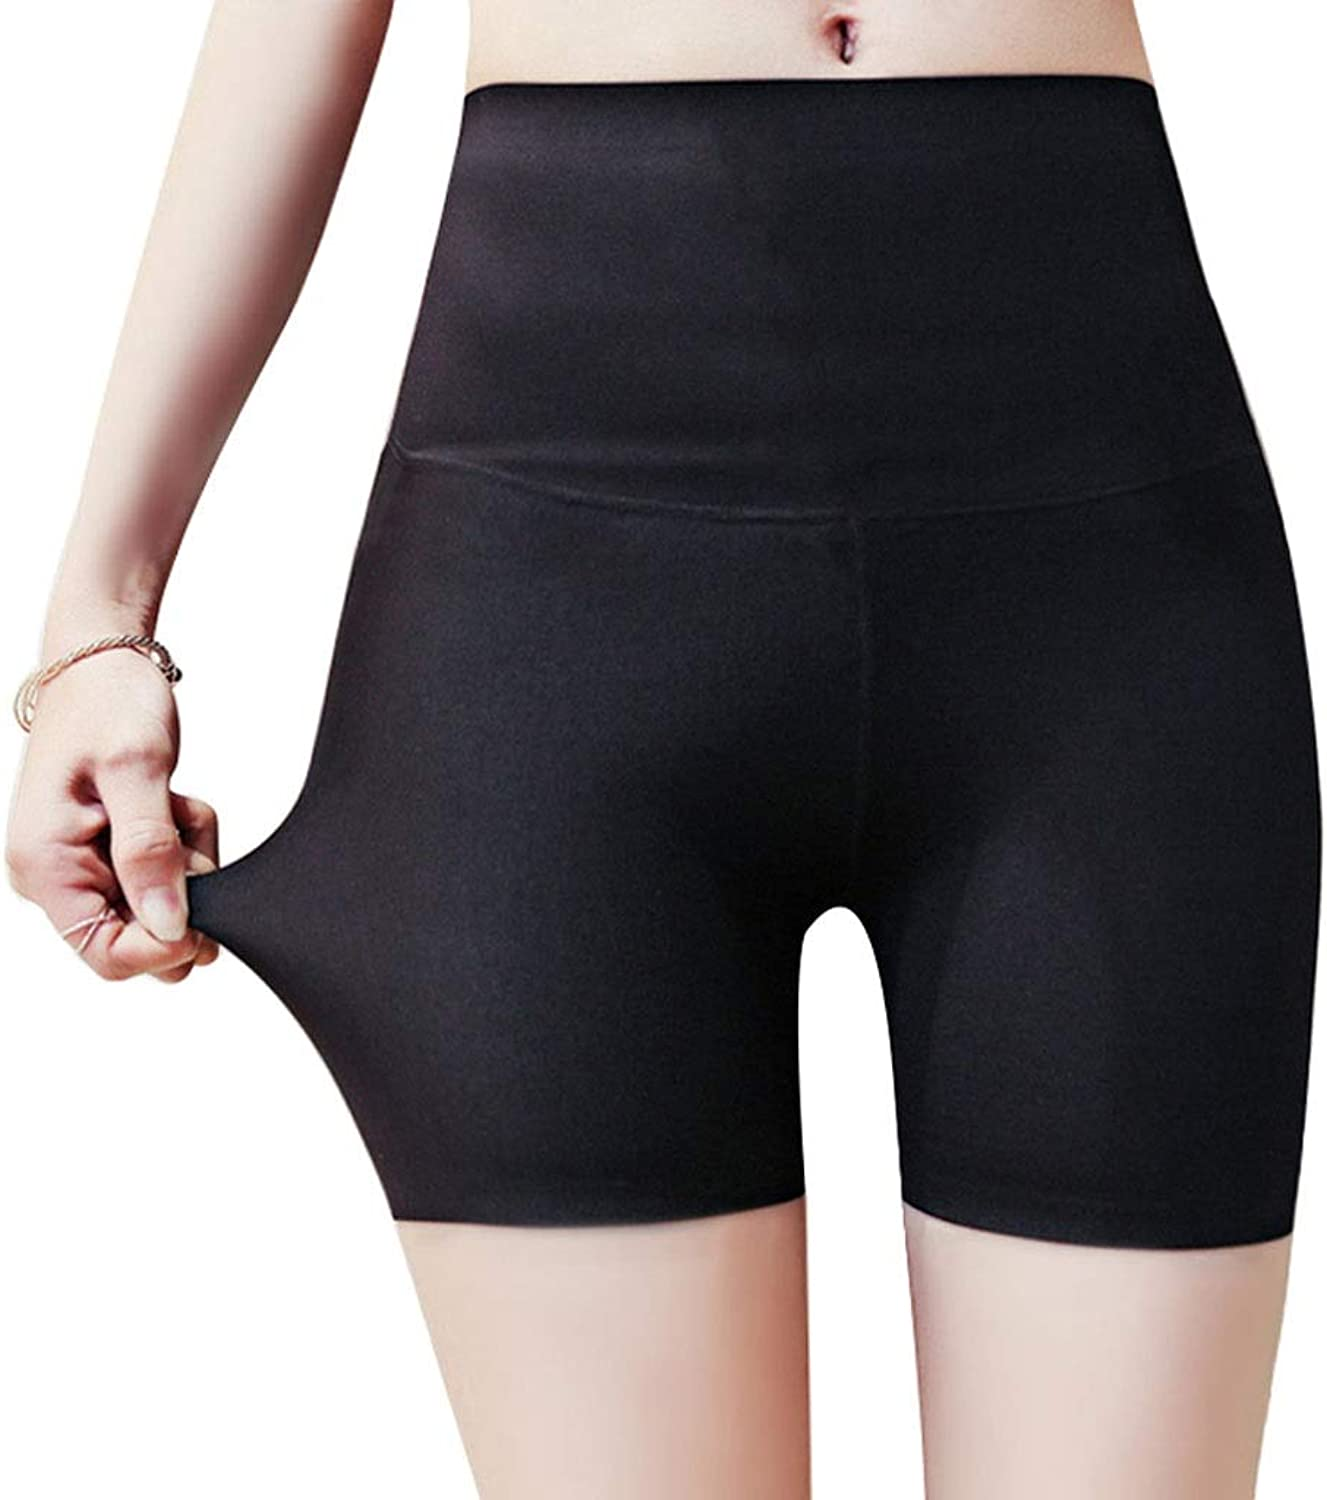 Leggings  No Curling High Waist Safety Pants Postpartum Tummy Hip Thin Section Ice Silk No Trace AntiLight Pants (color   Black, Size   M)